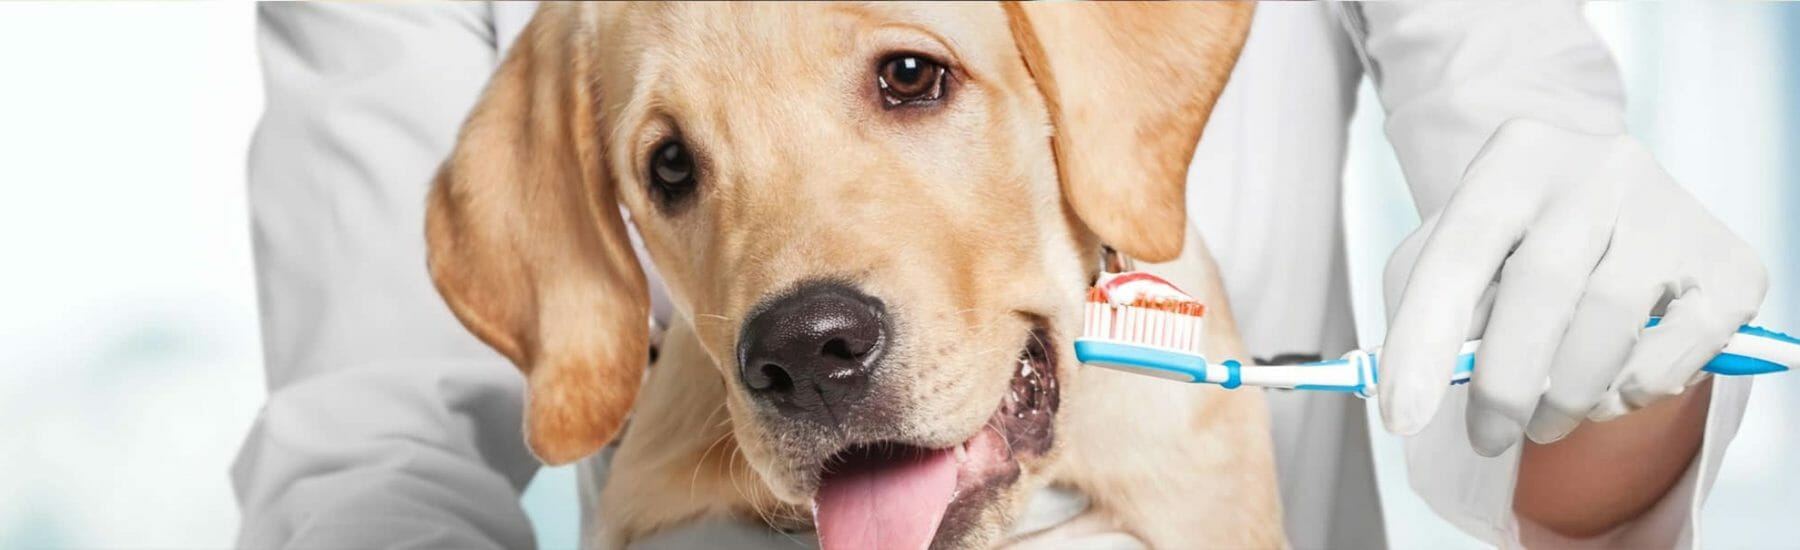 Golden dog getting teeth brushed by veterinarian